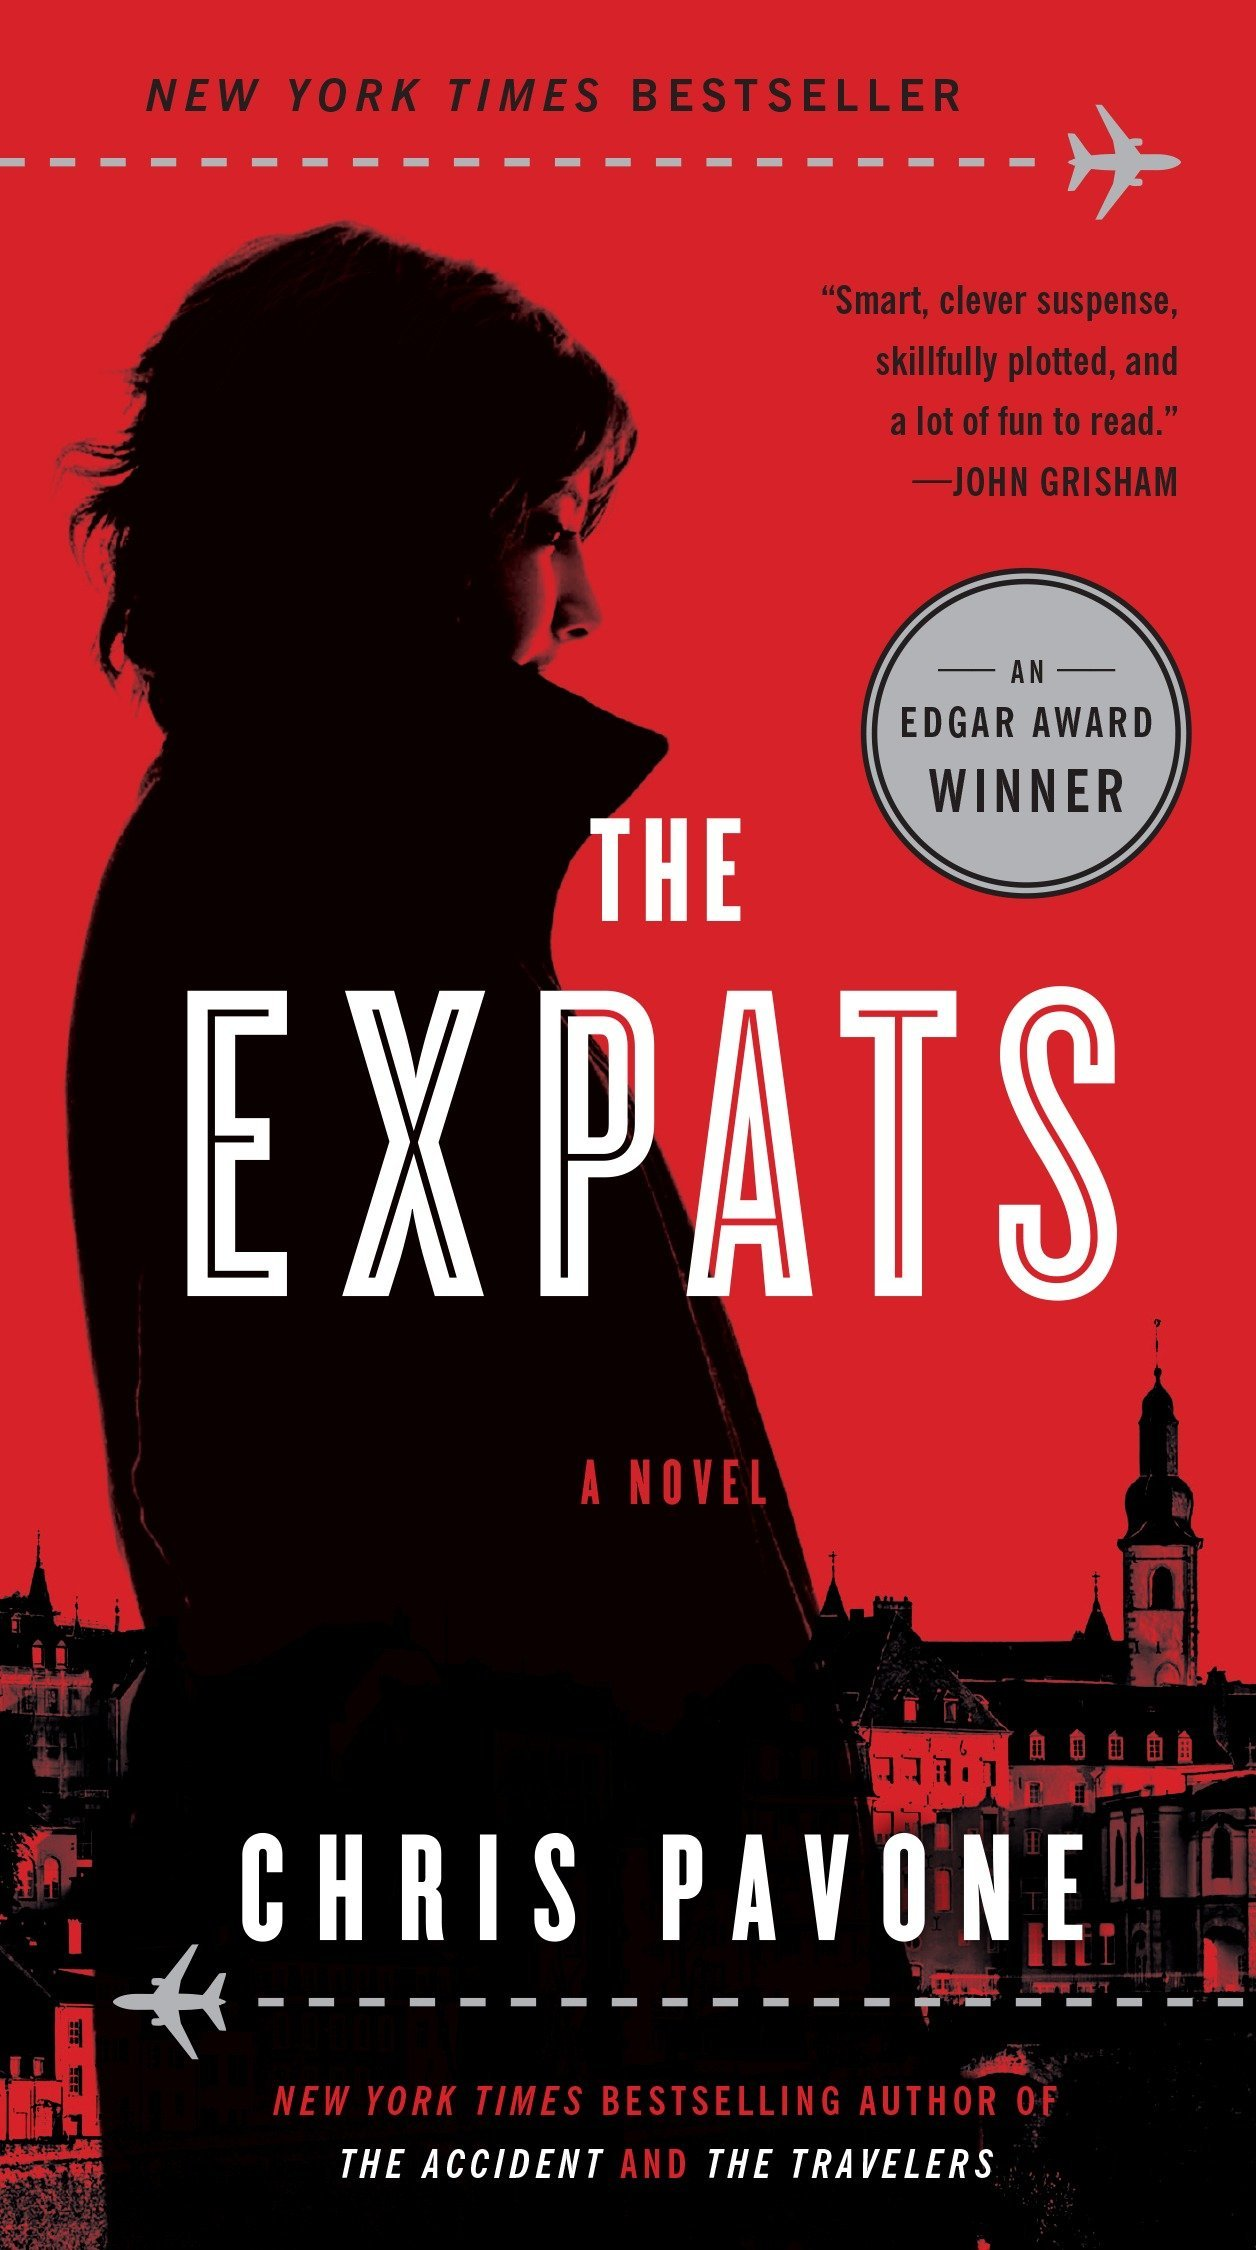 book review: the expats by chris pavone — Kelley Rose Waller